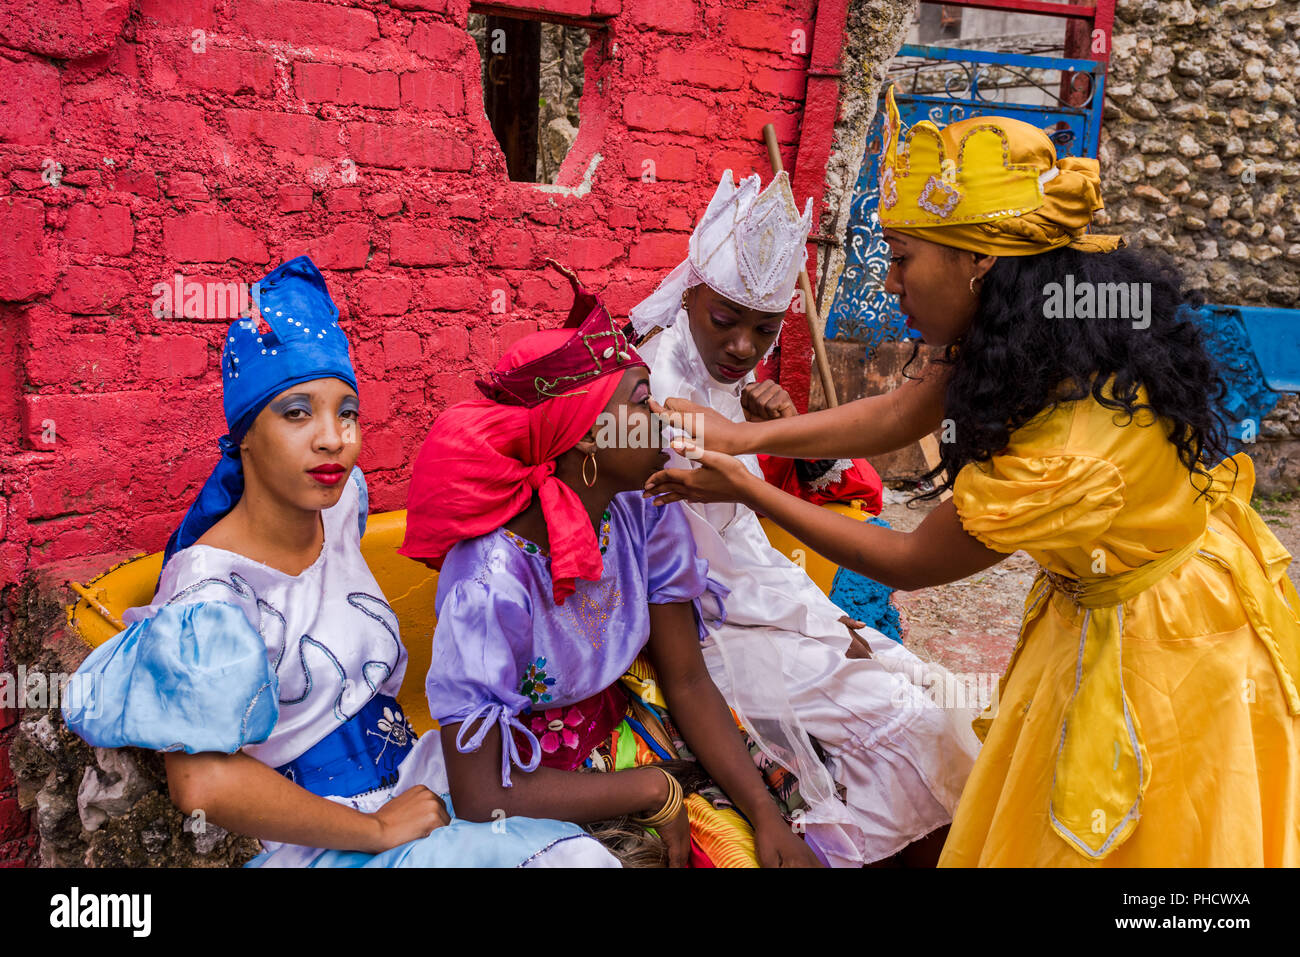 Havana, Cuba / March 20, 2016: Costumed Cuban women fixing makeup before Santeria performance at Hamel Alley. - Stock Image